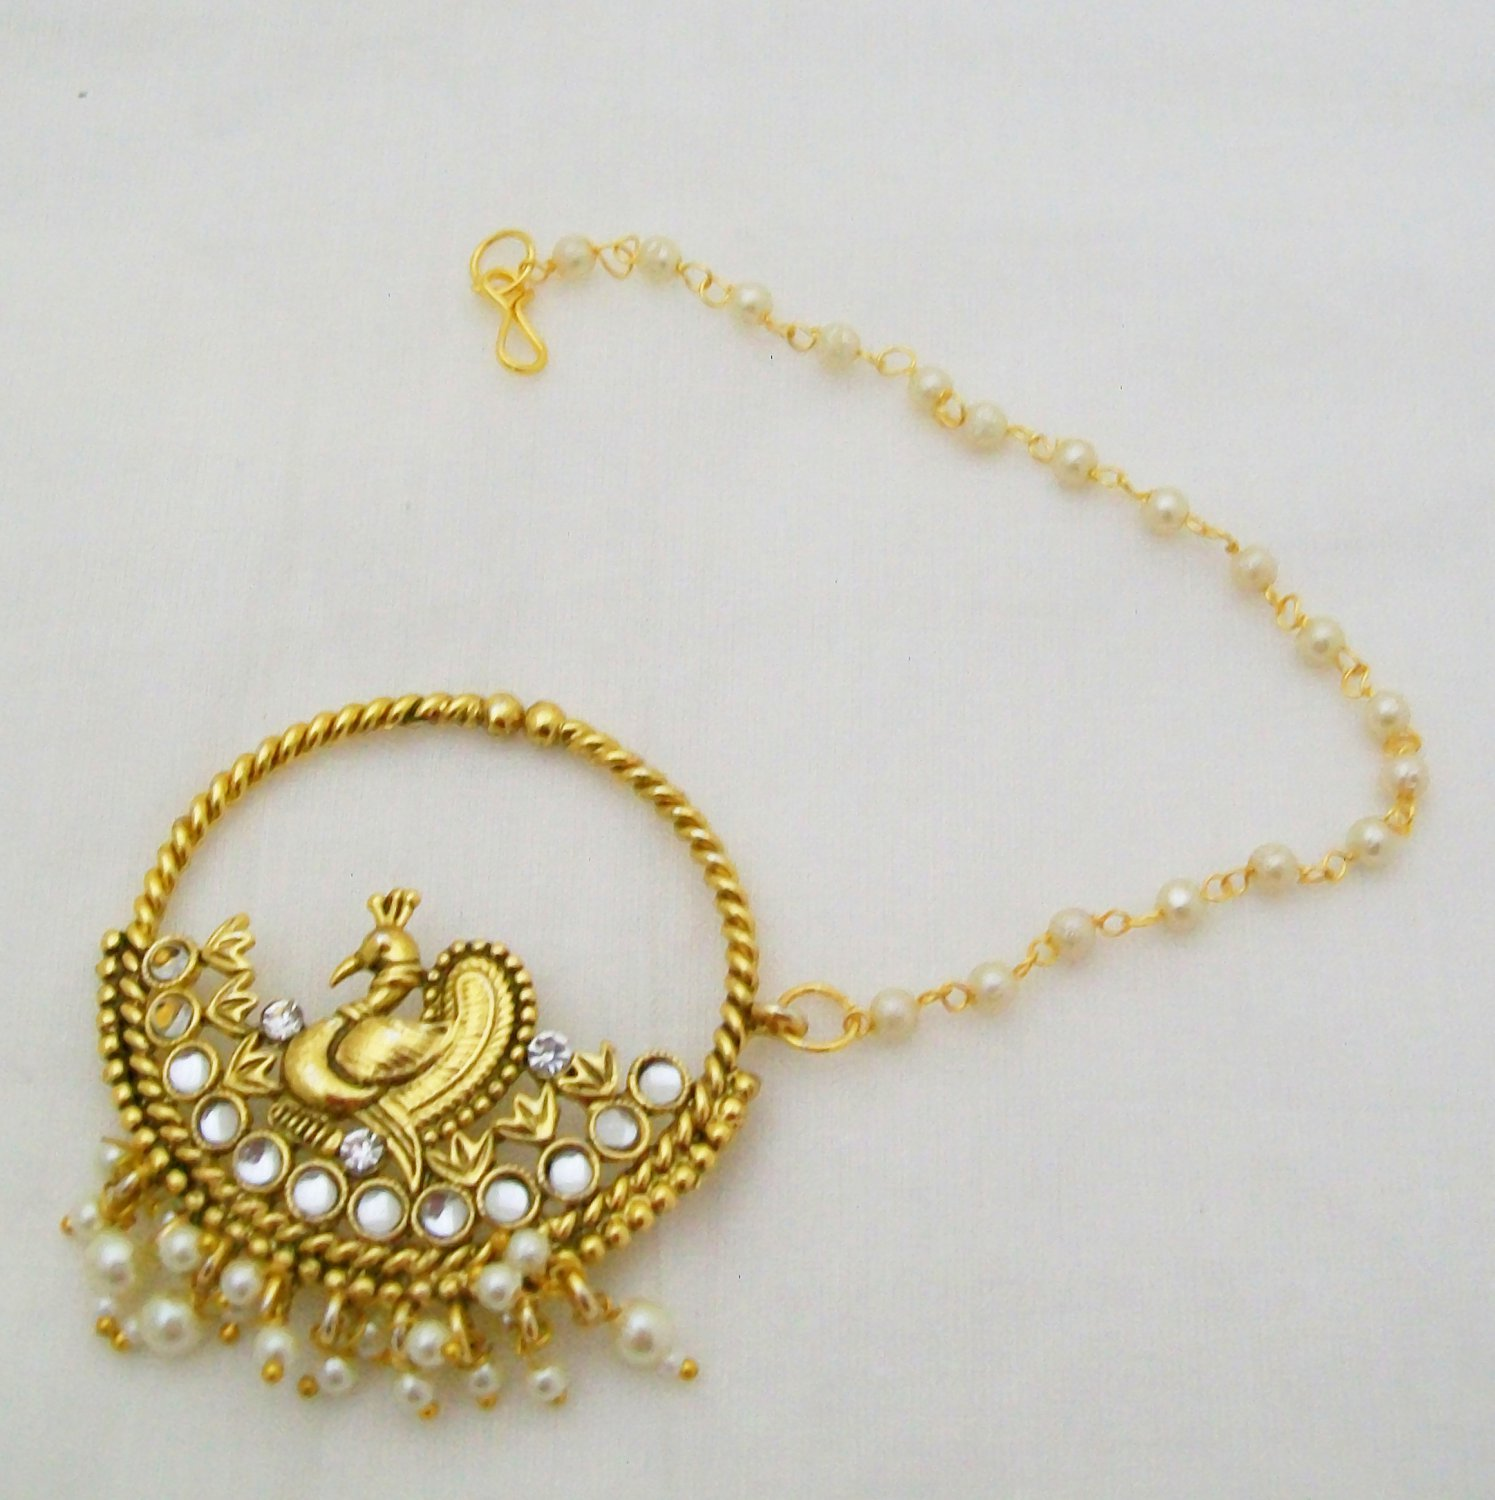 Peacock Pearl Kundan Nath Nose Ring Hoop Chain Indian Traditional Ethnic Jewelry Clip